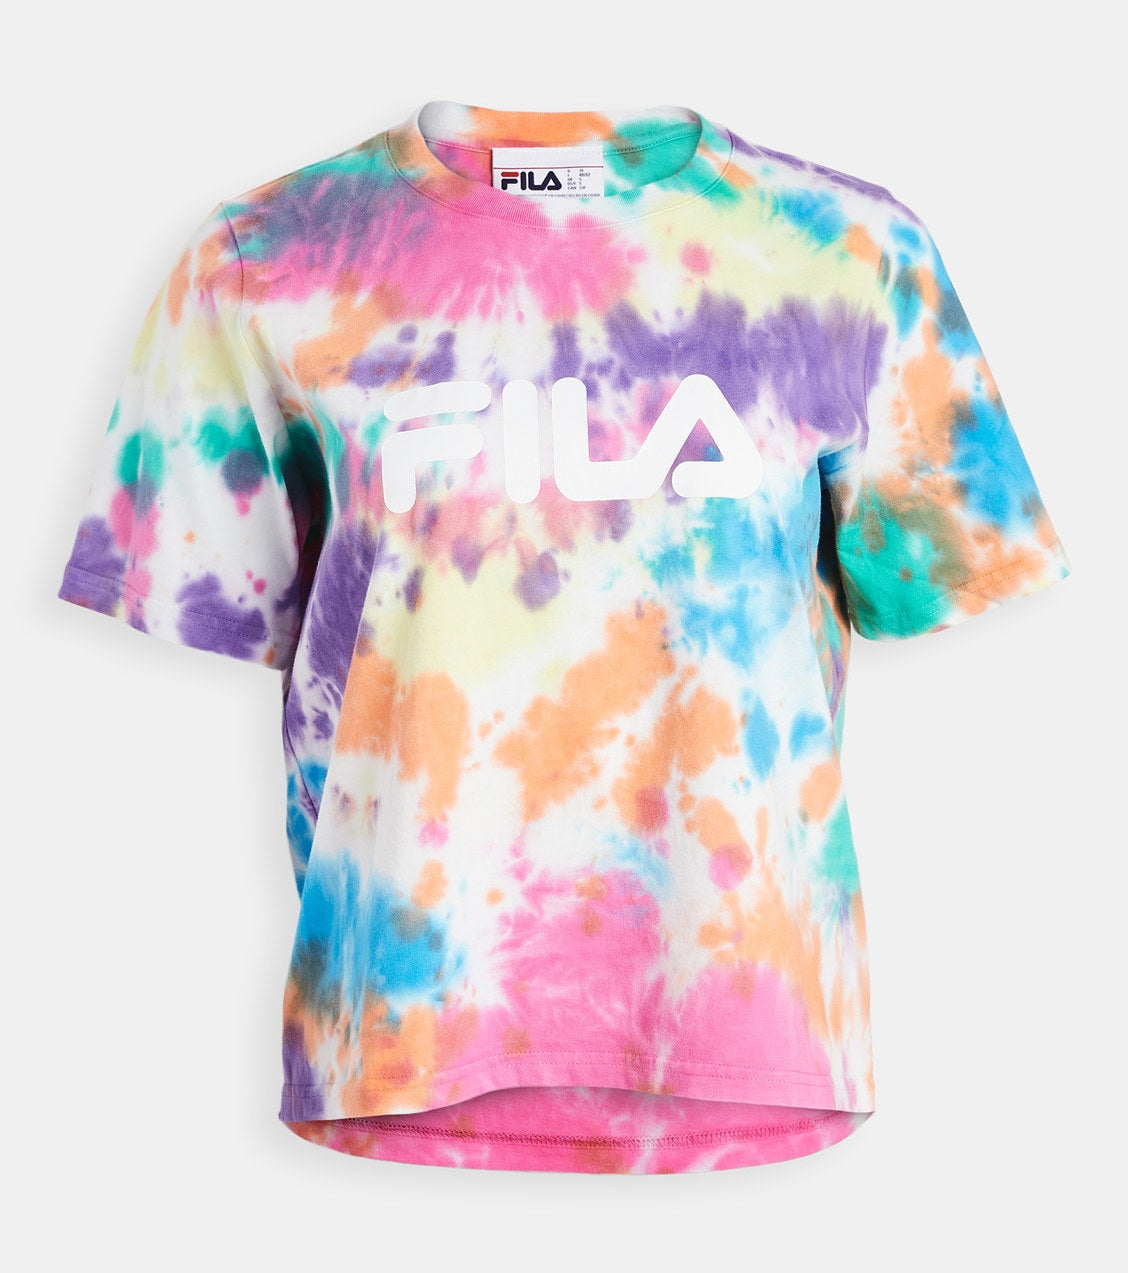 the shirt with the fila logo on it in white and tie-dye in purple, orange, pink, blue, green, and yellow